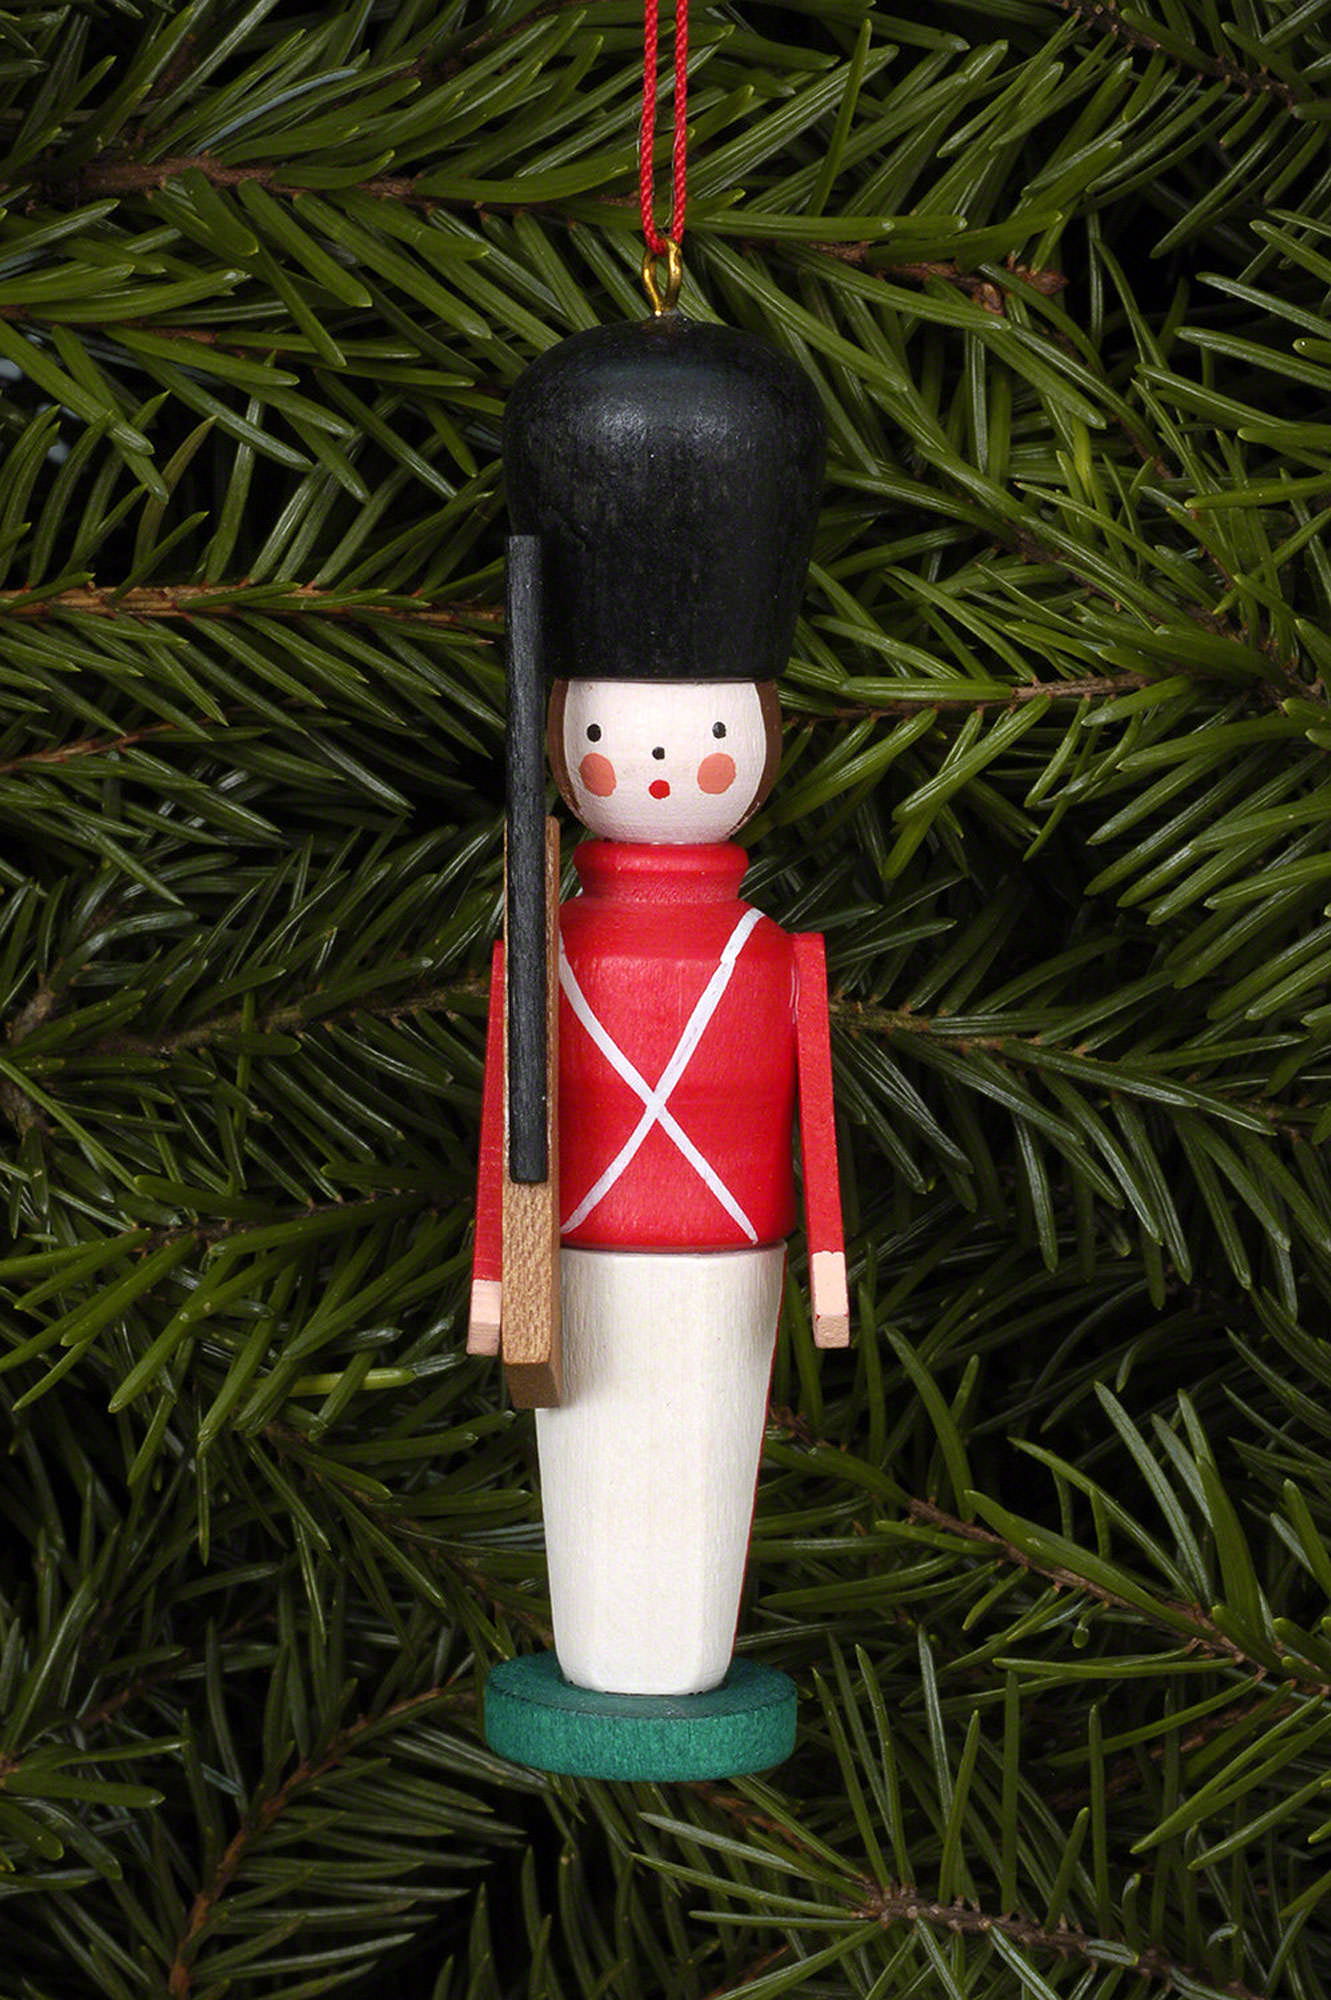 tree ornament toy soldier 2485 cm13in by christian ulbricht